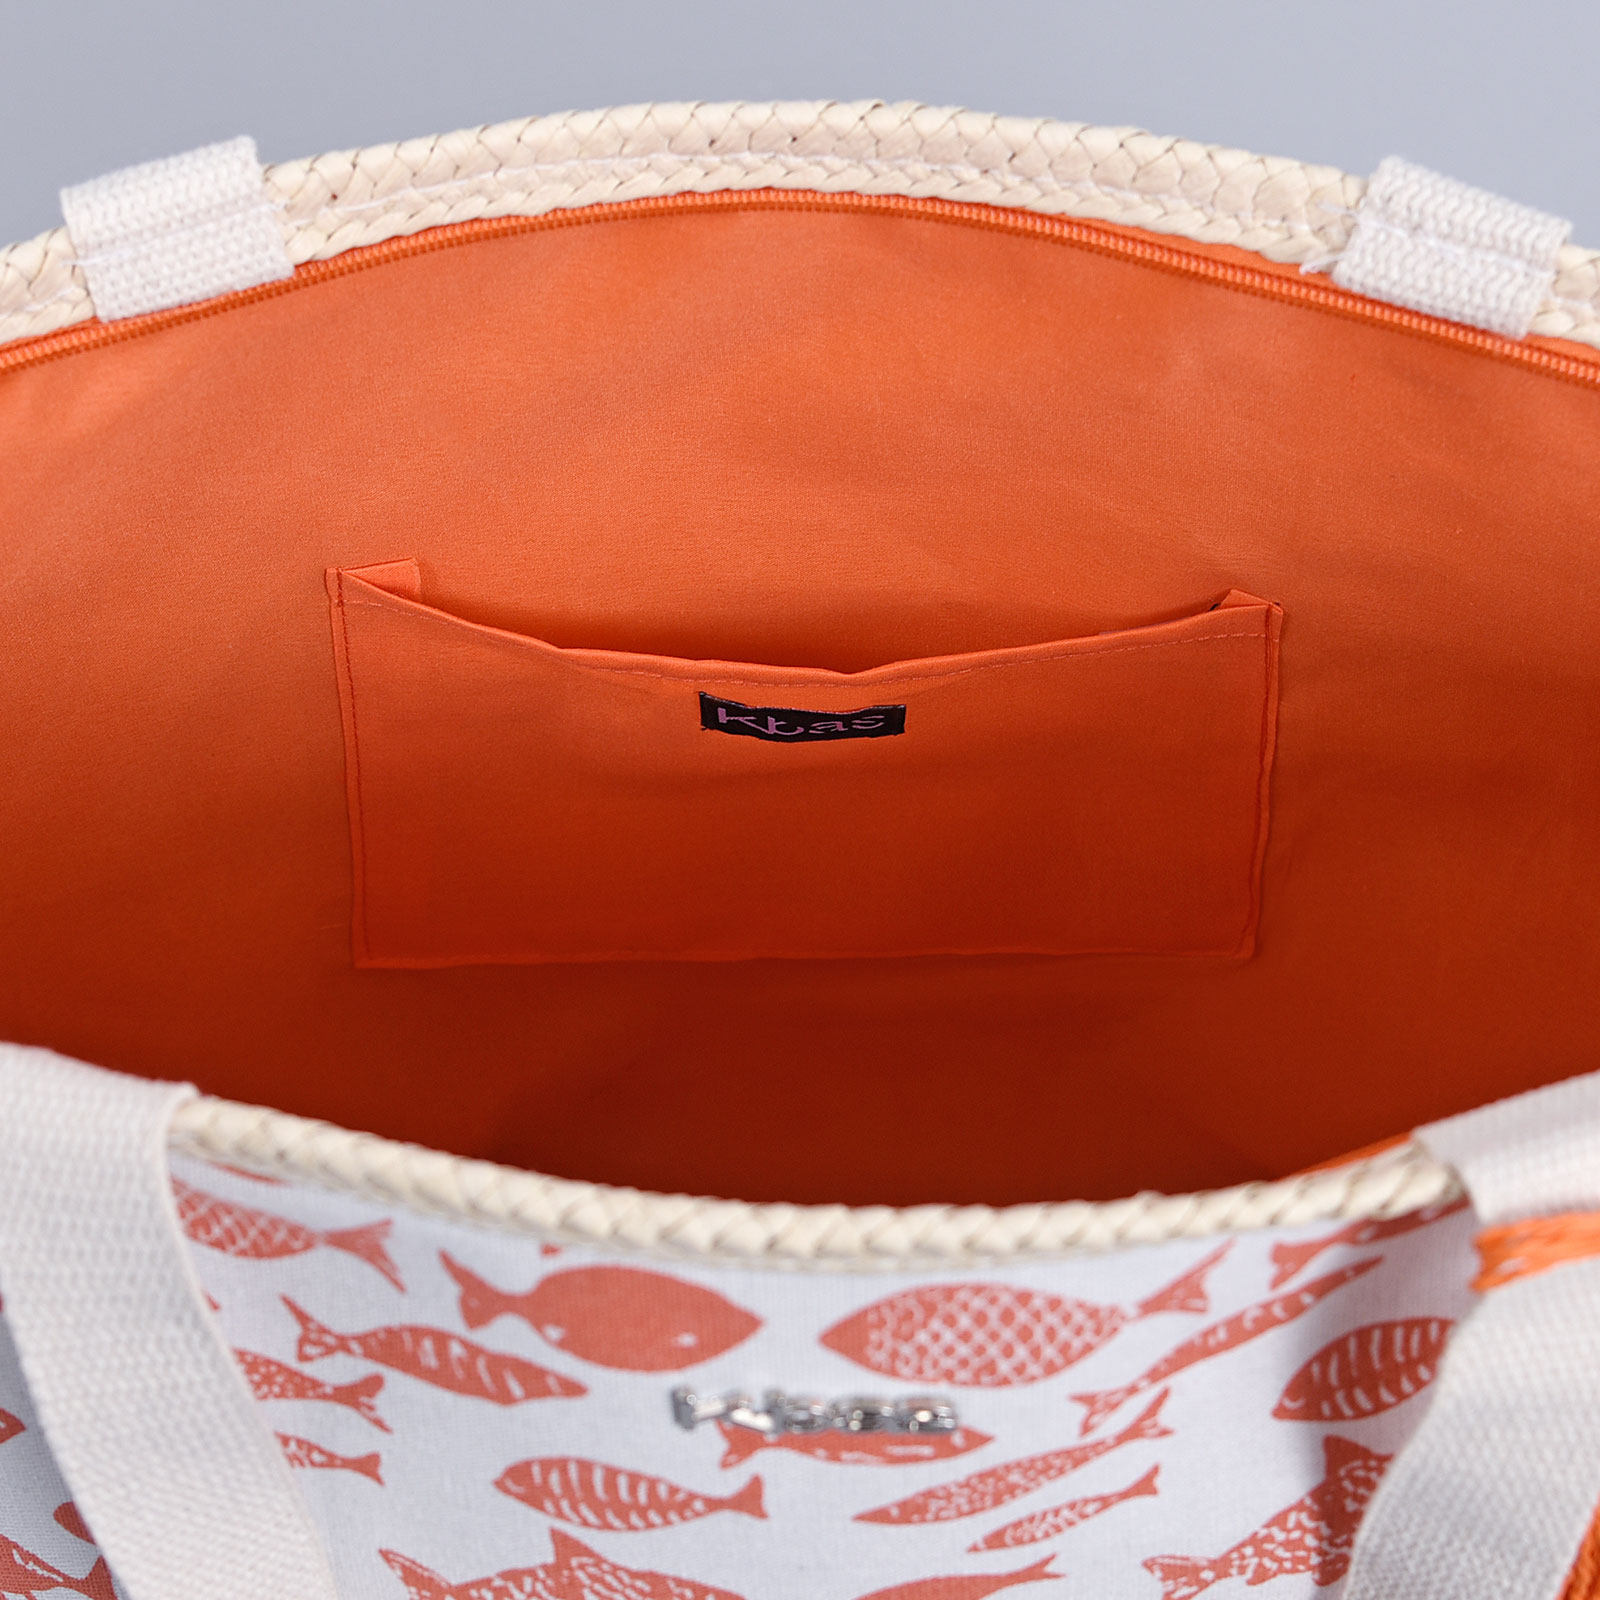 MQ-00112-orange-D1-sac-pochette-plage-impermeable